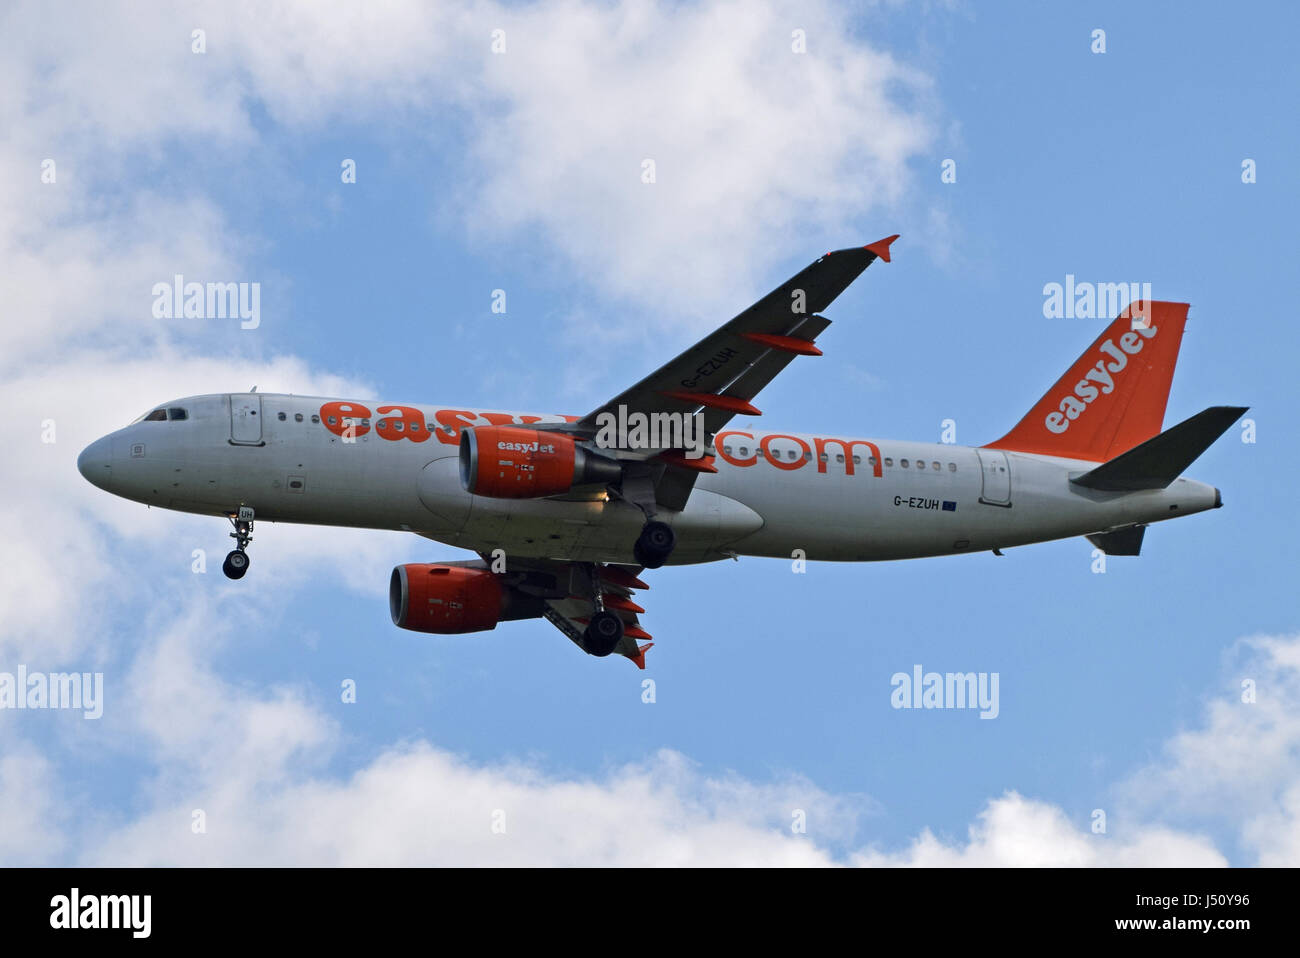 G-EZUH easyJet Airbus A320-200 - cn 4708 on final approach to LGW London Gatwick airport - Stock Image